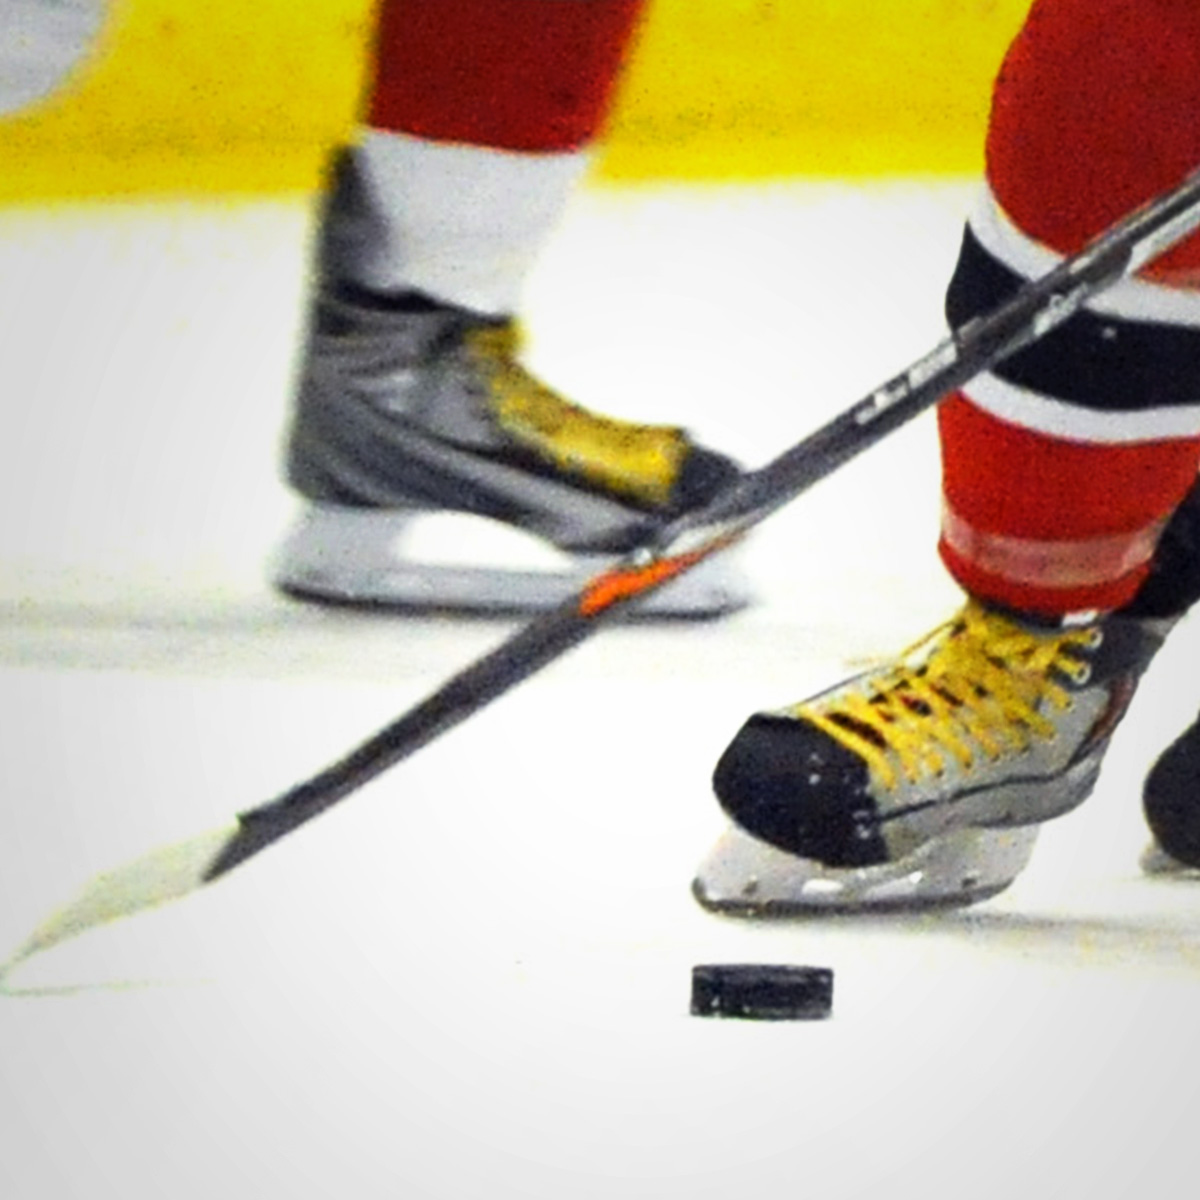 ICE HOCKEY: City Stars and Oxford Mail in link-up